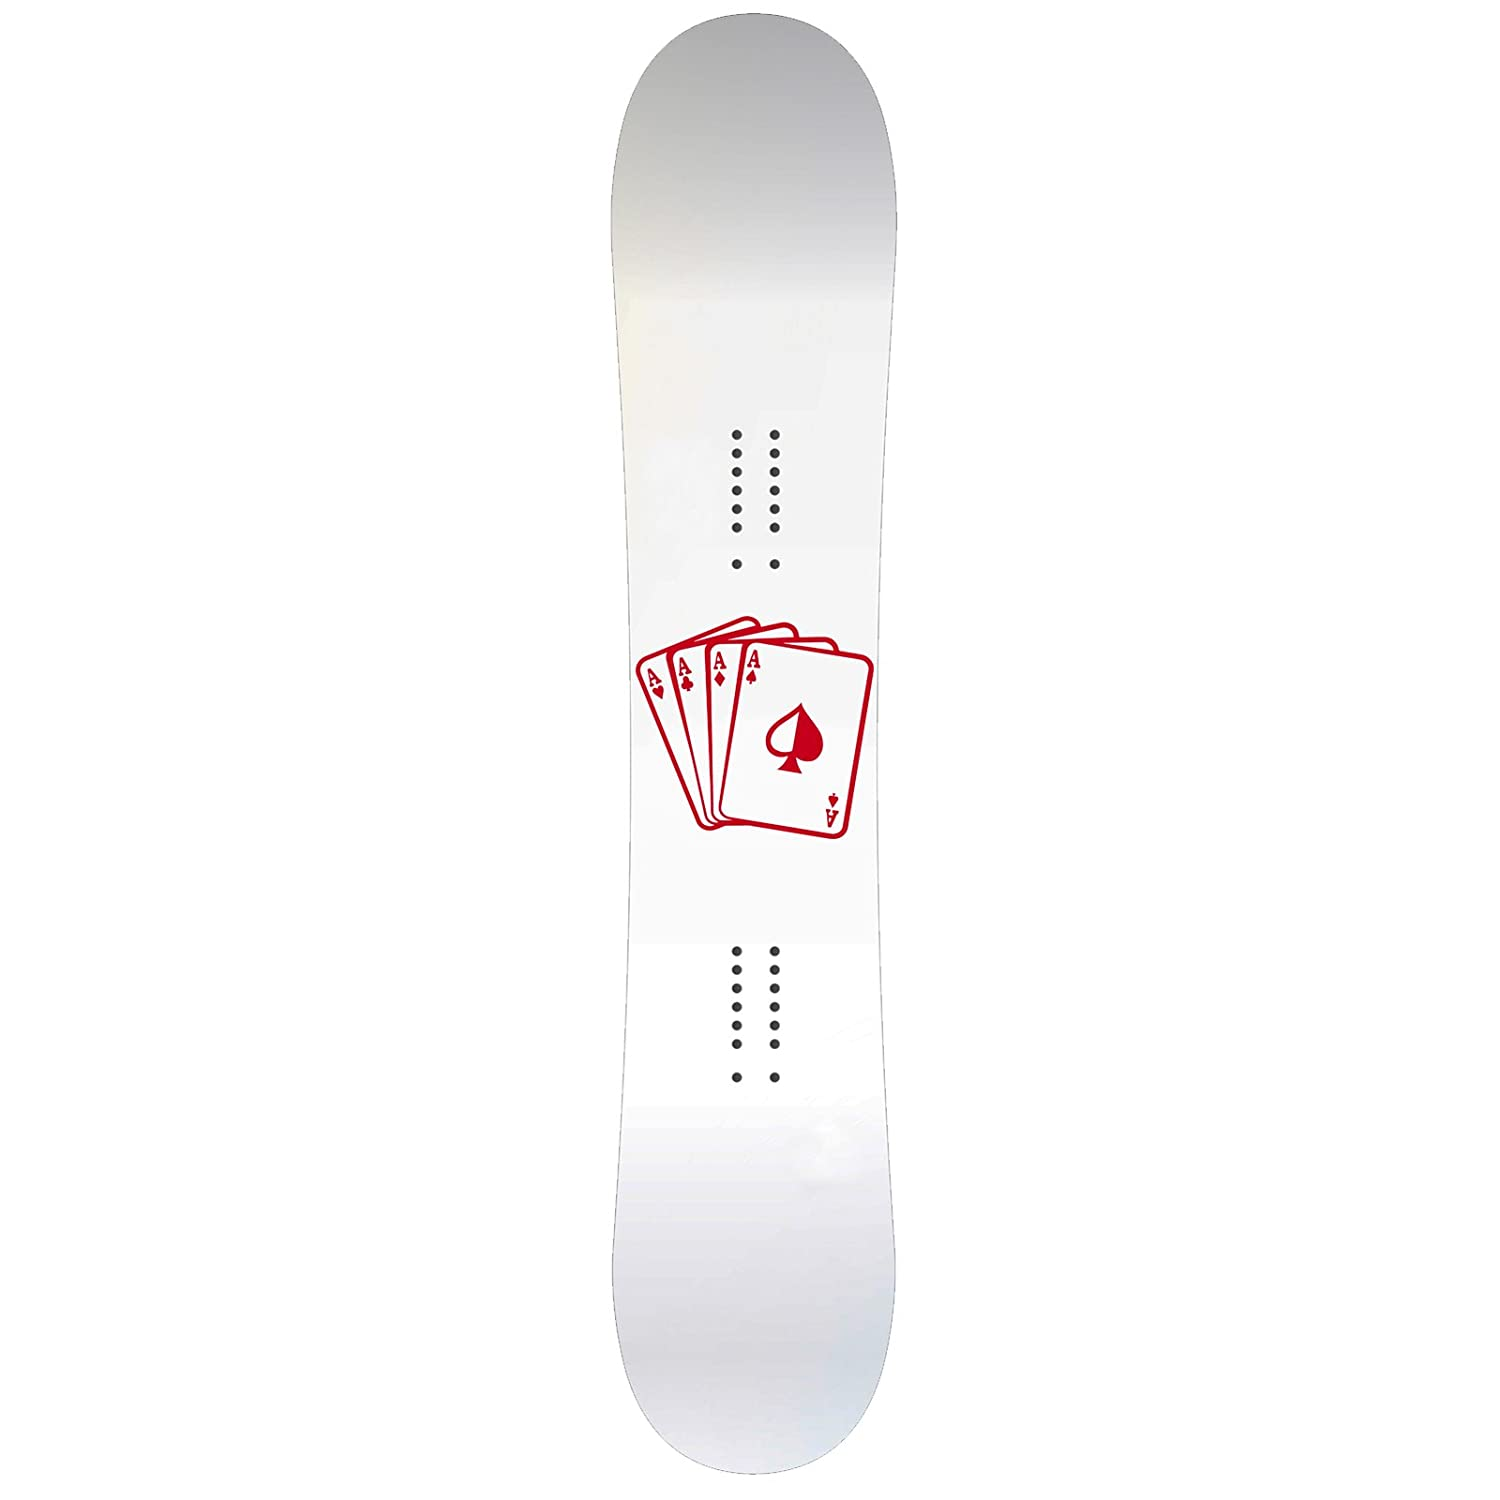 Playing Cards Aces Snowboard Sticker All Weather 6 Vinyl Decal